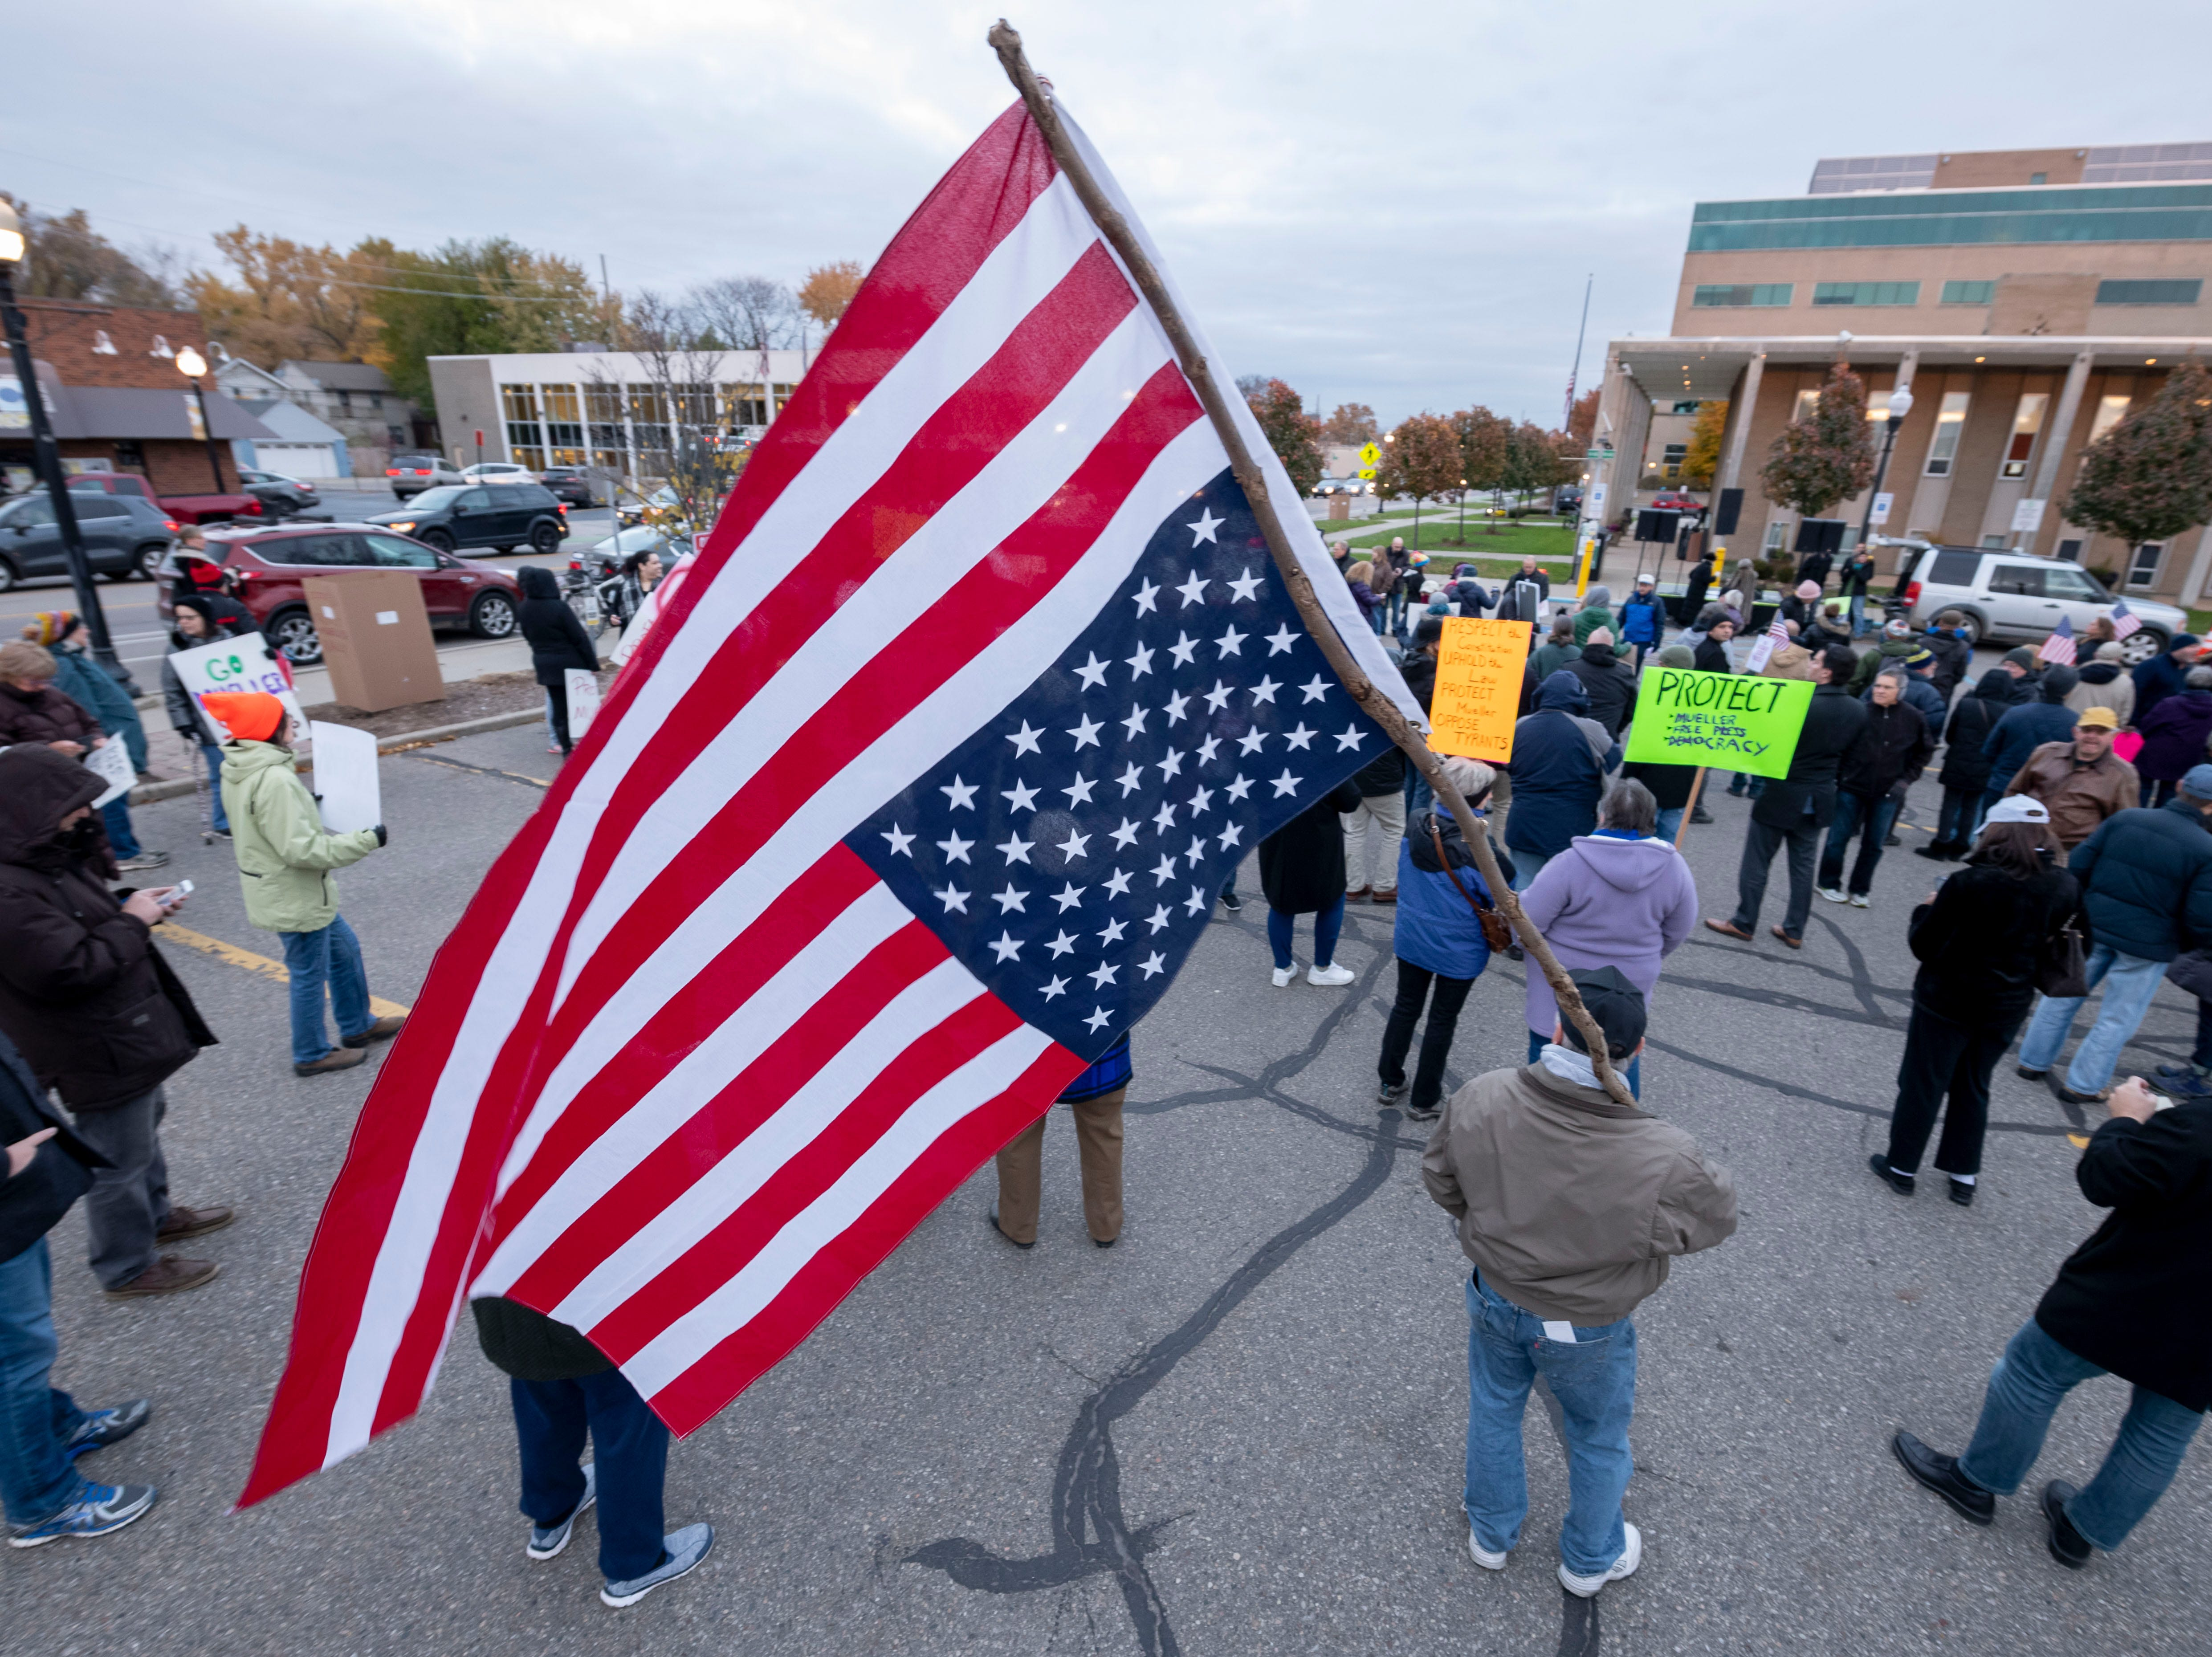 A protester holds an upside down American flag, a sign of extreme distress, during a protest at Ferndale City Hall.